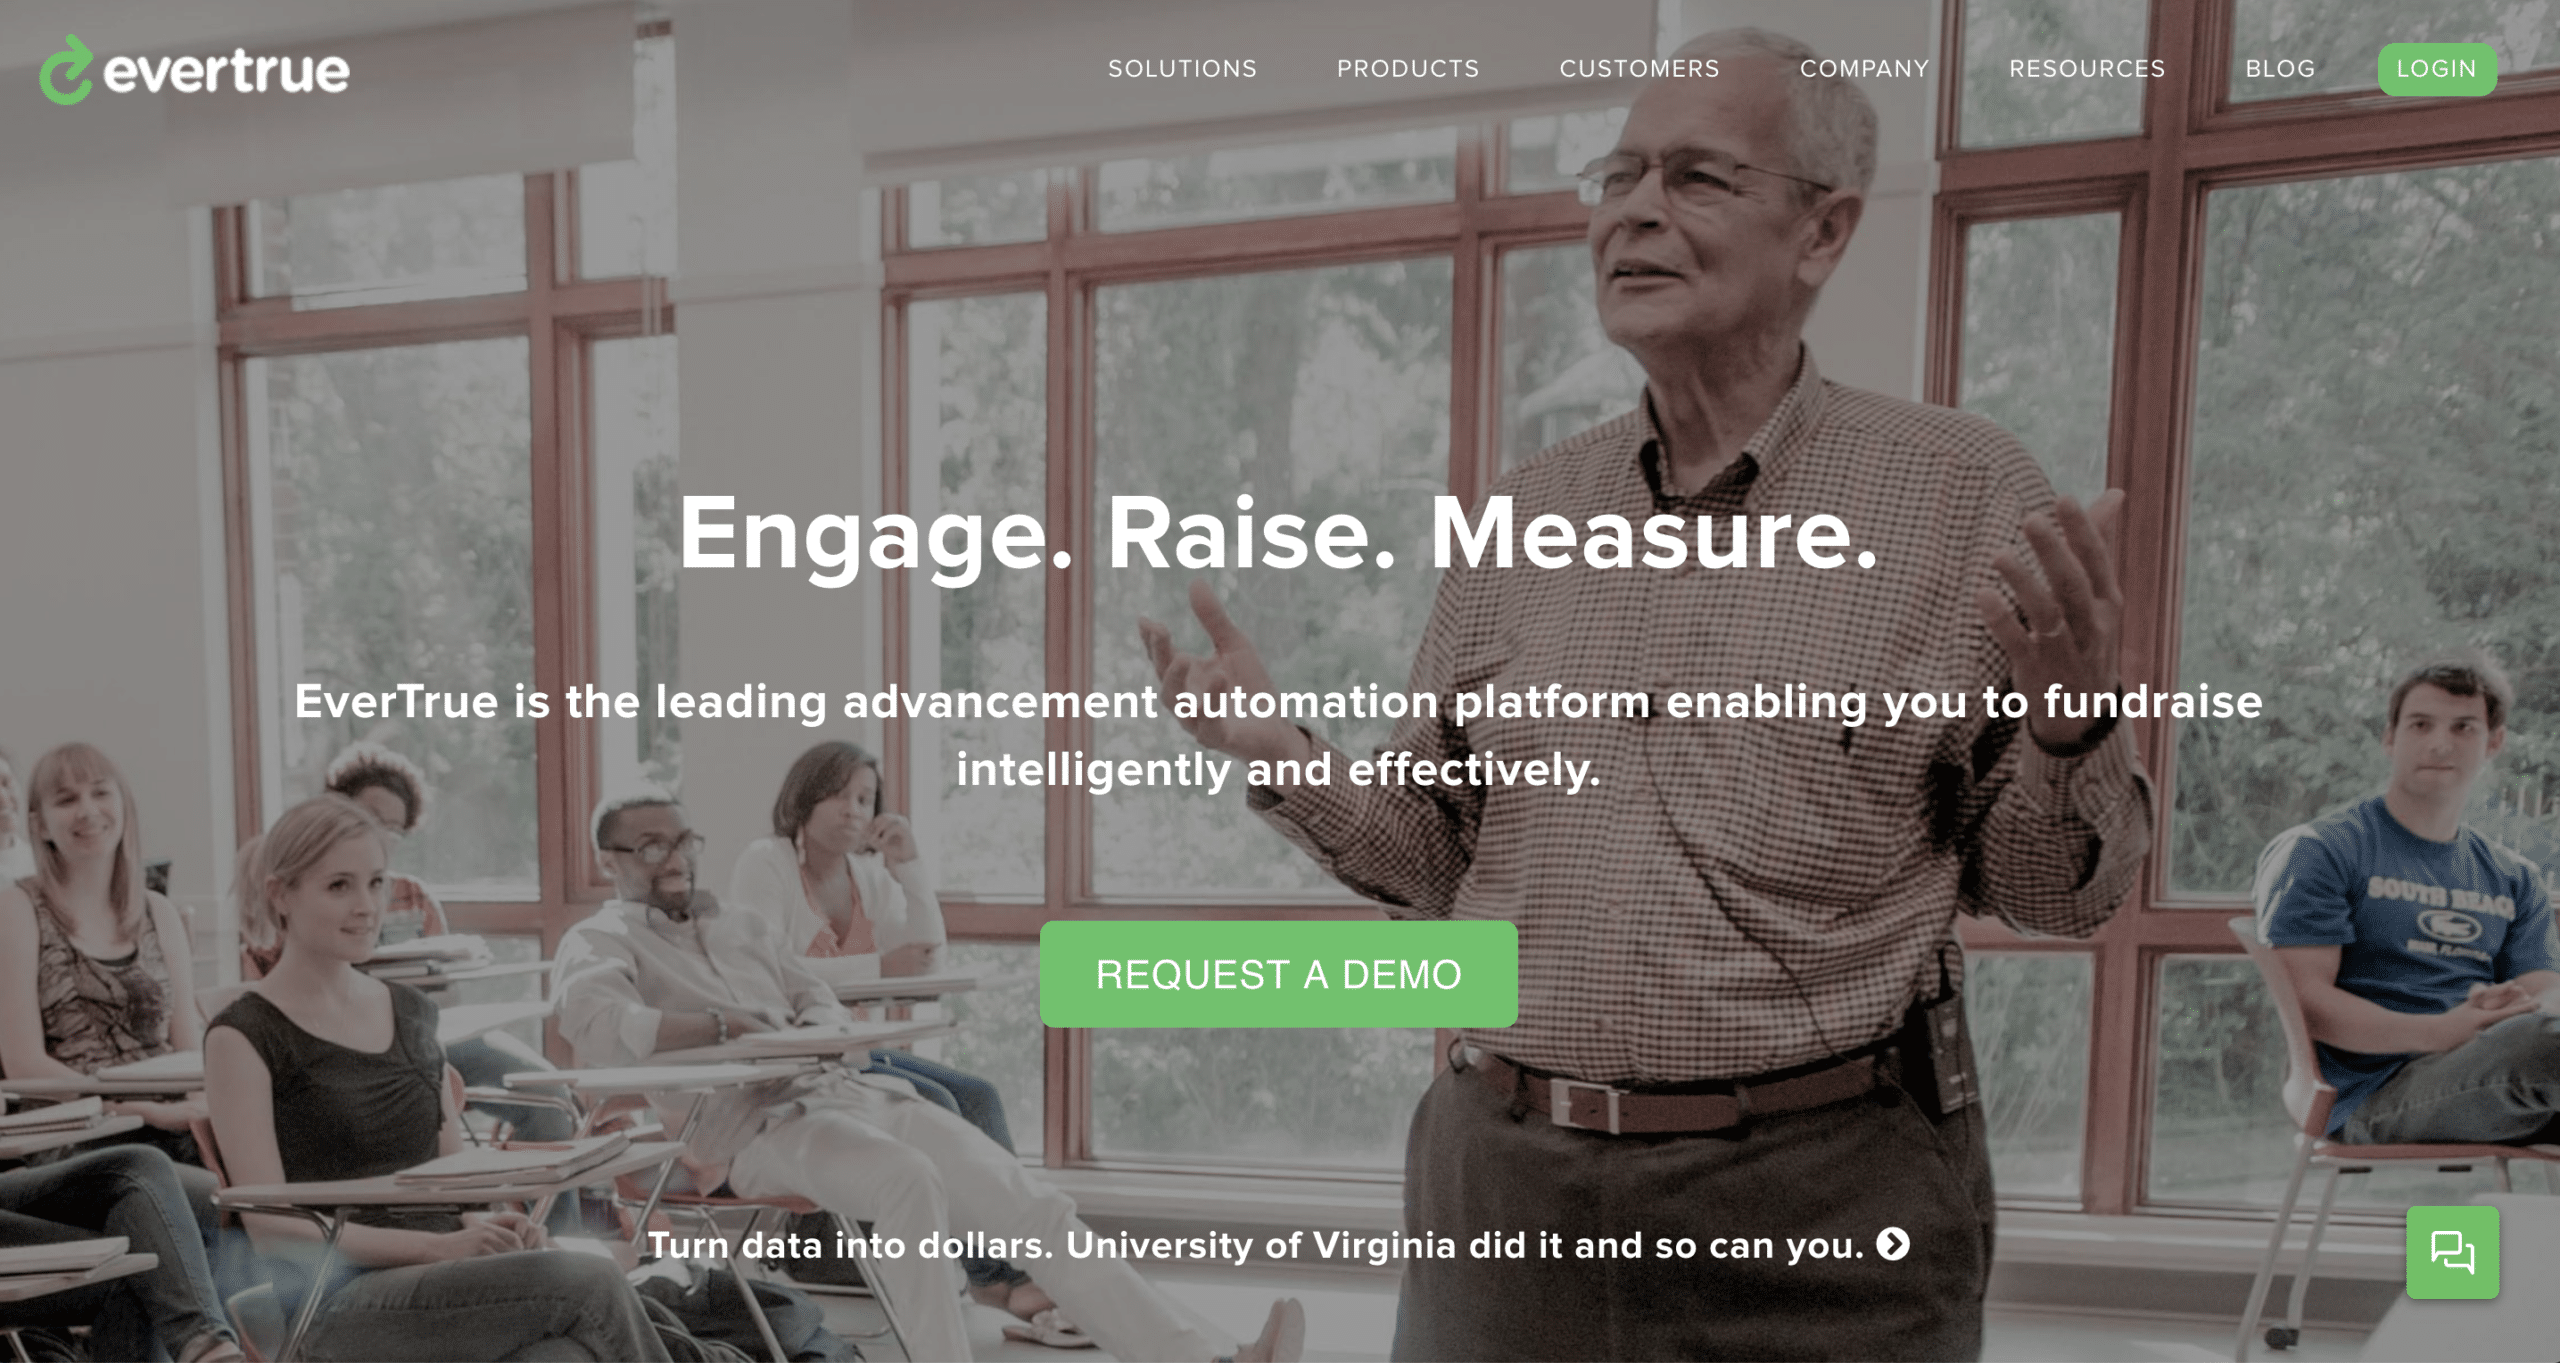 EverTrue landing page example shows short and to-the-point copy